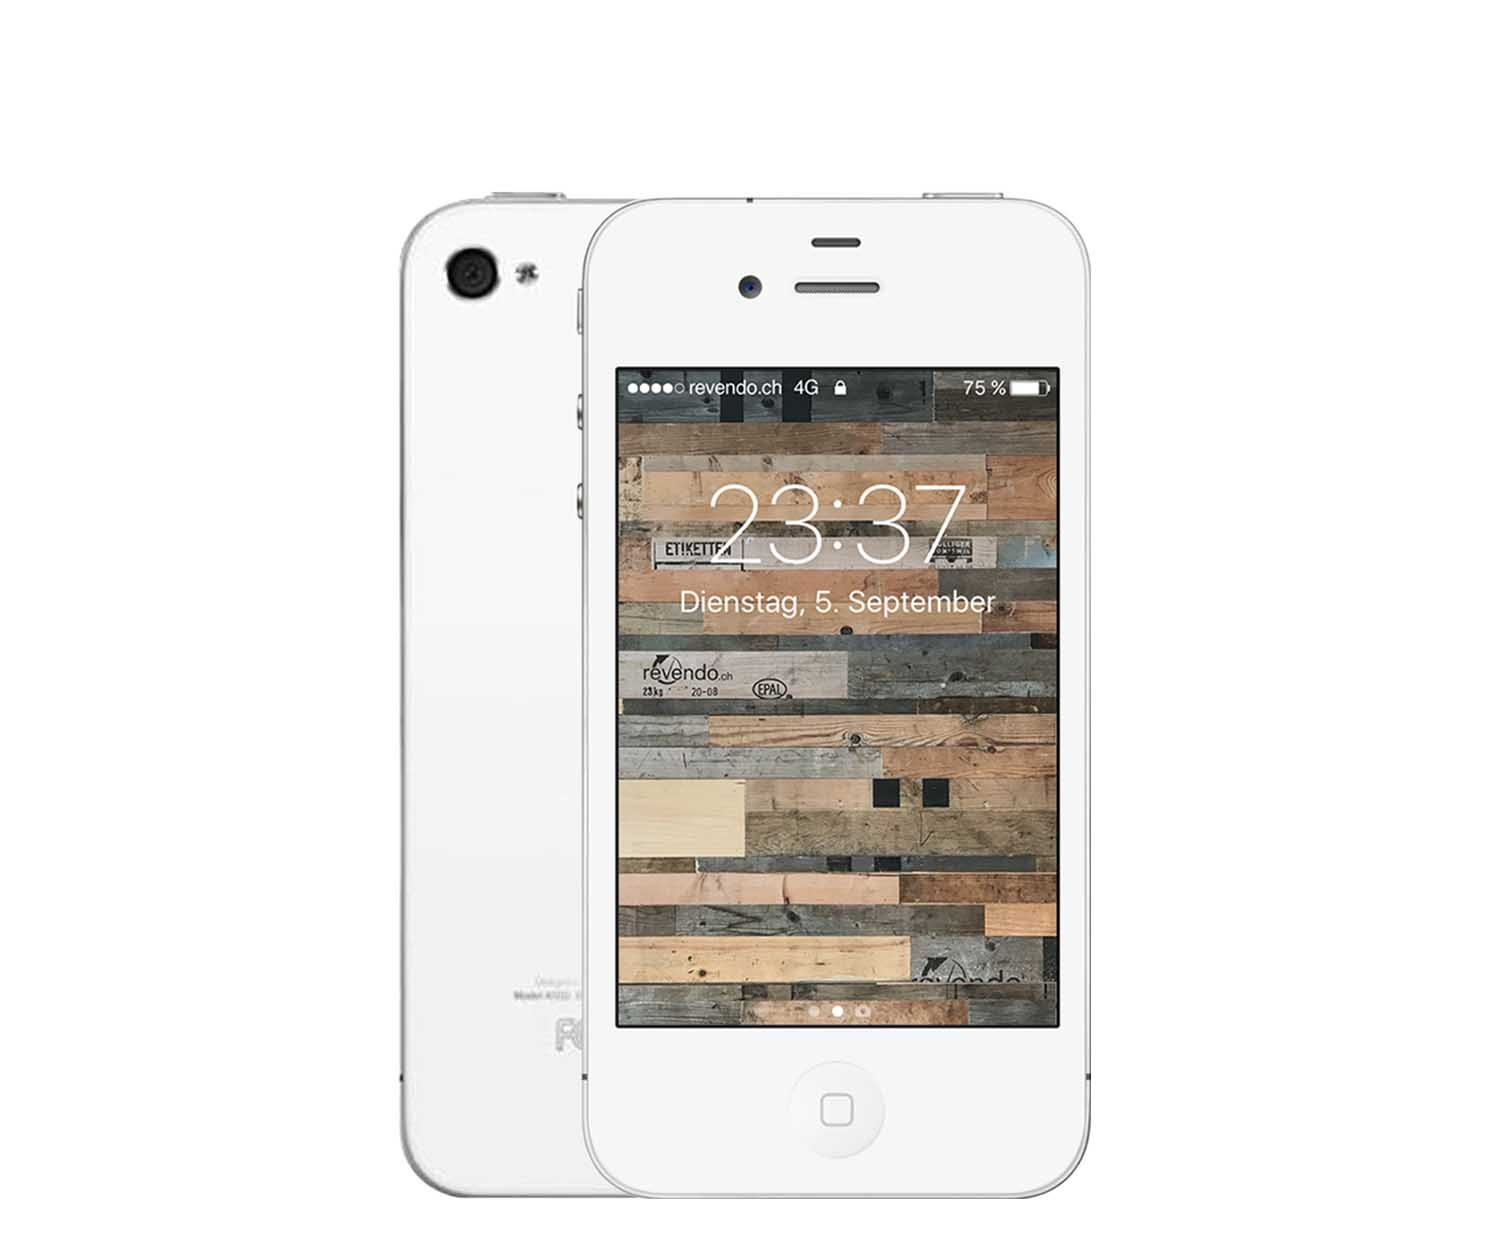 apple iphone 4 8 gb weiss. Black Bedroom Furniture Sets. Home Design Ideas